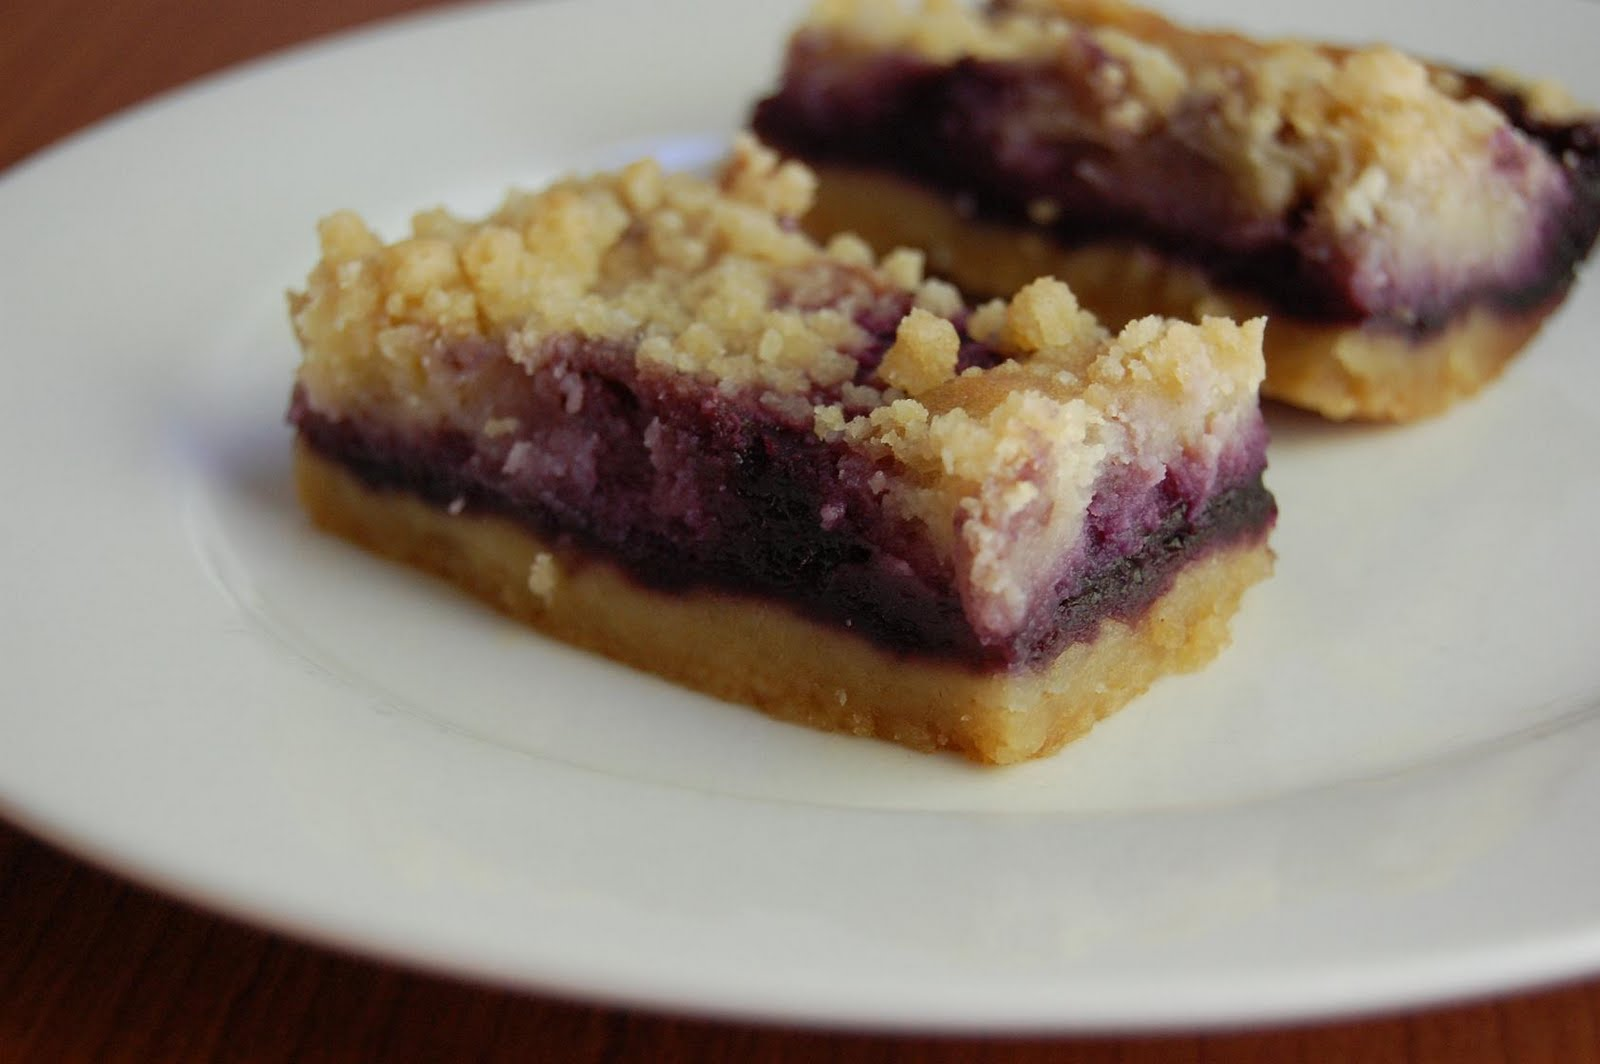 Canadian Baker Too: Blueberry cheesecake Shortbread Bars